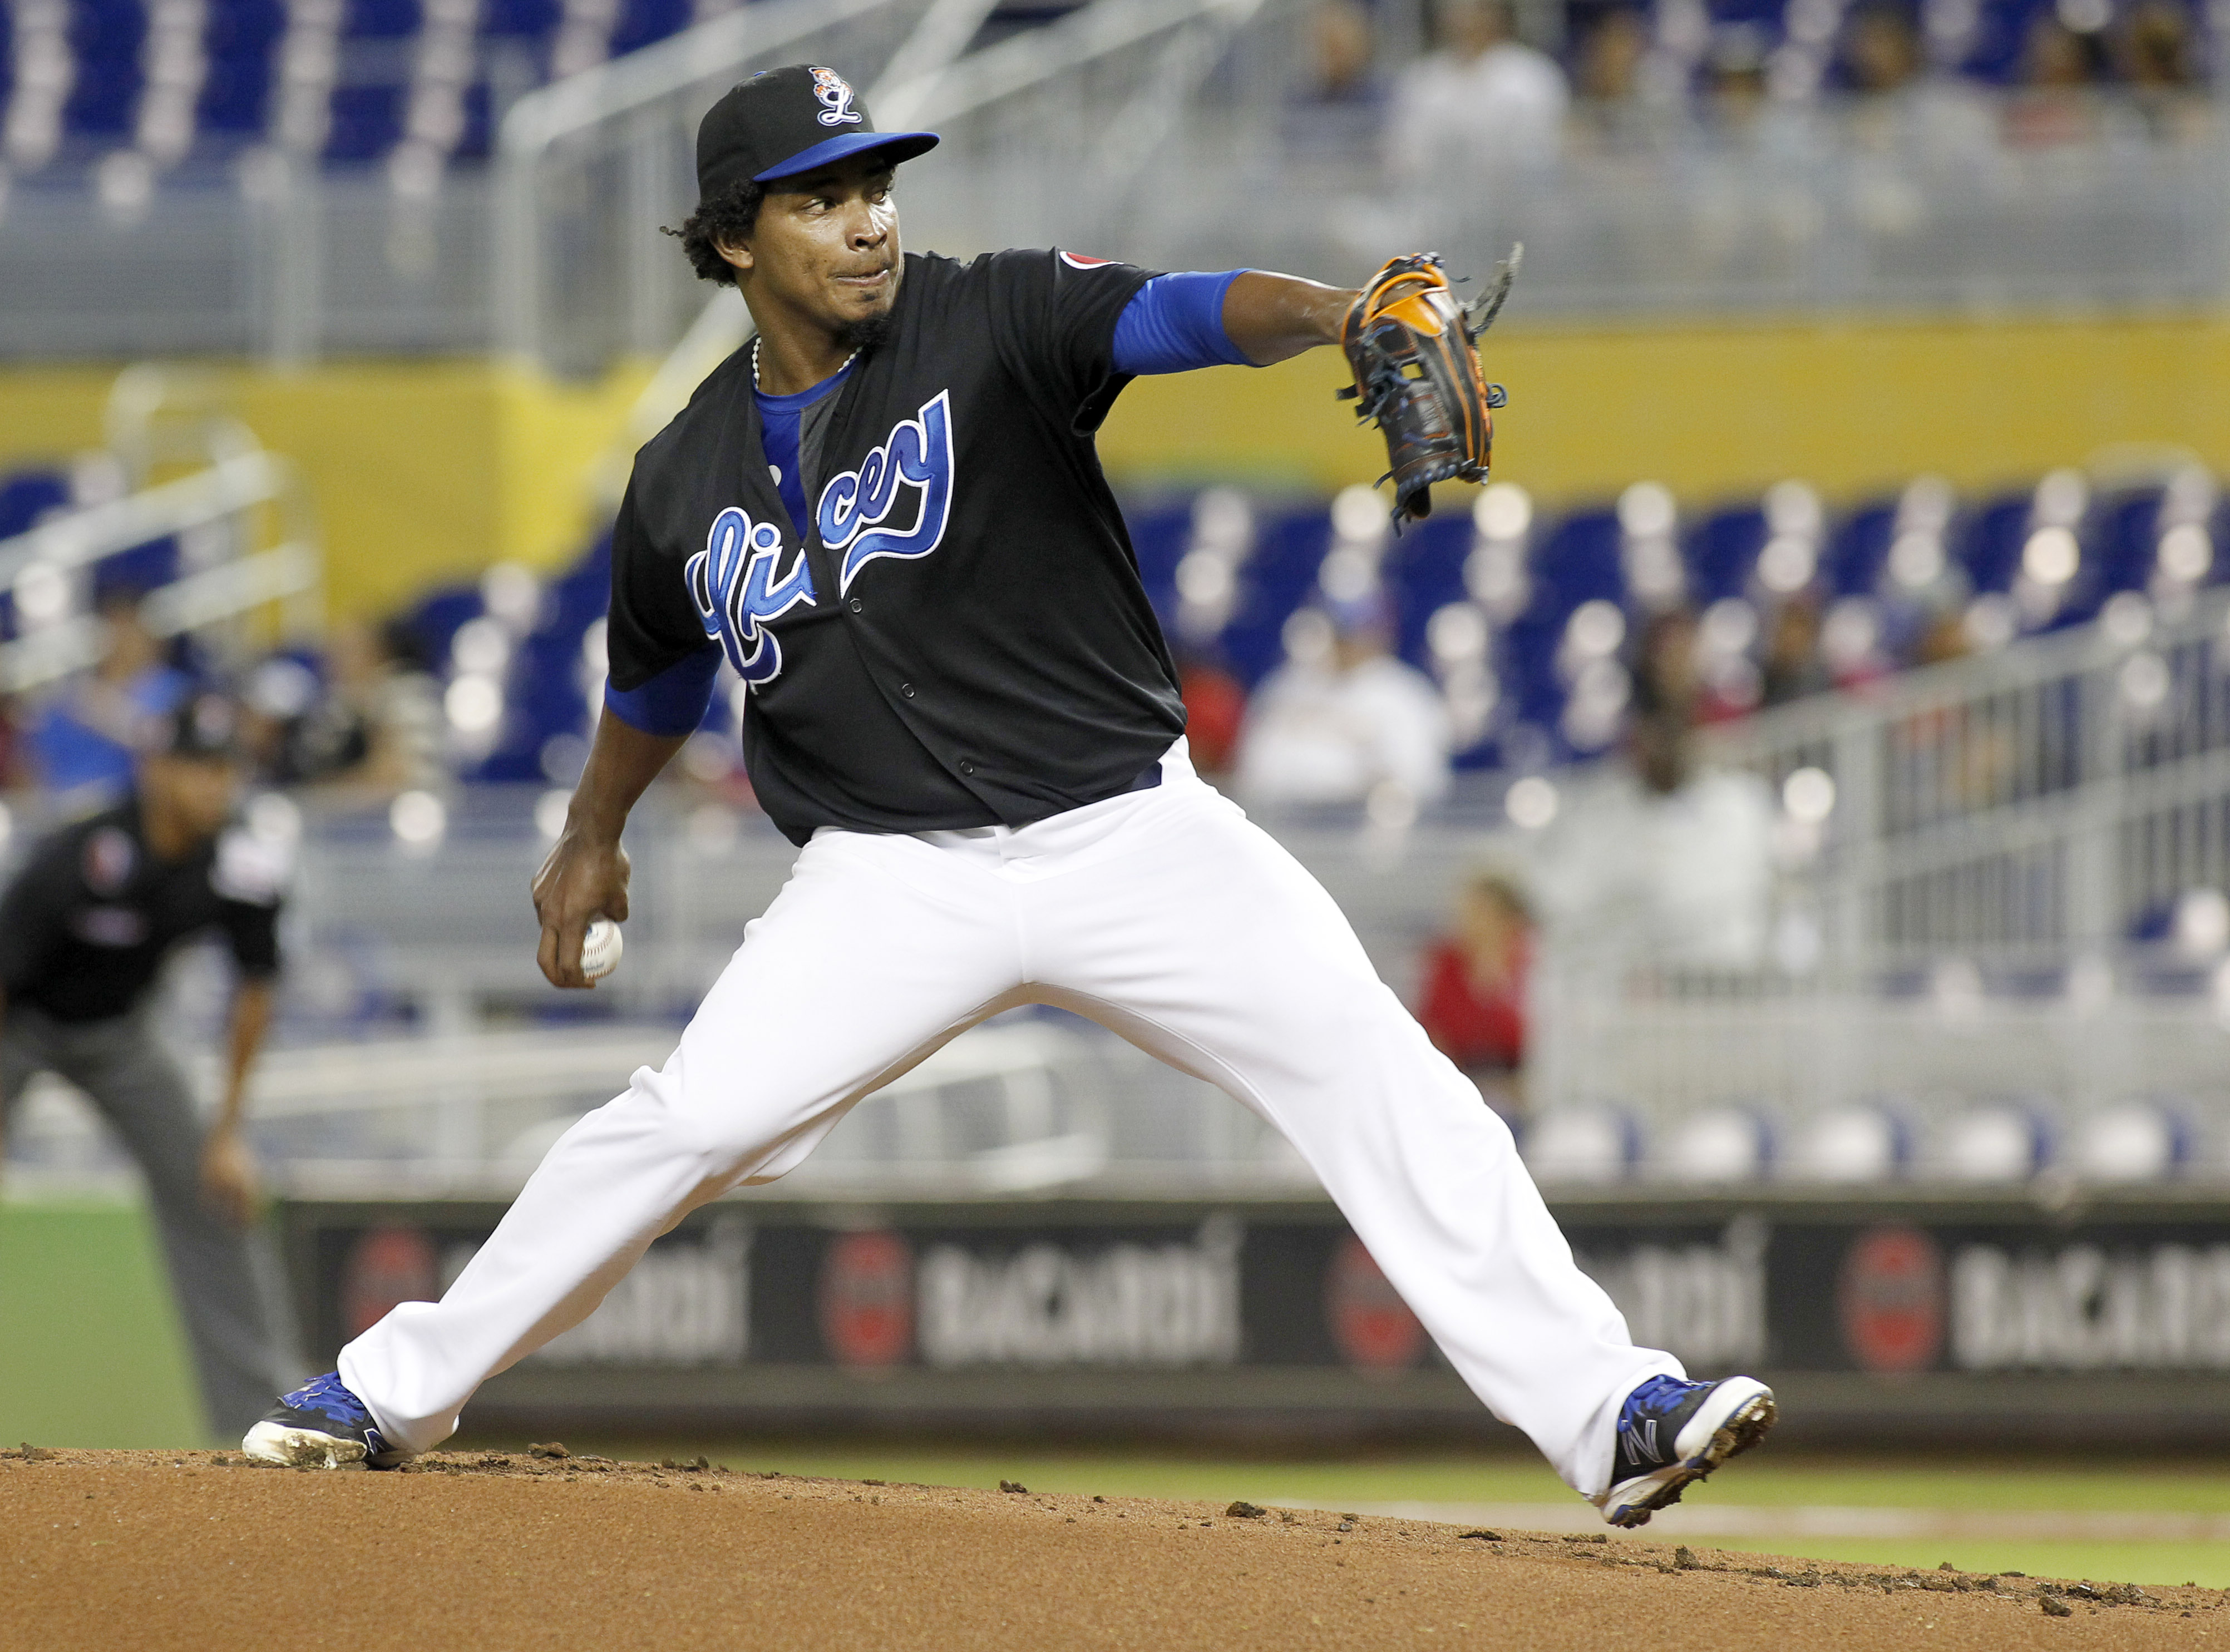 Tigres' starting pitcher Enderson Franco throws against the Tigres in the first inning during a Serie de las Americas baseball game at Marlins Park in Miami, Sunday, Nov. 22, 2015. (AP Photo/Joe Skipper)